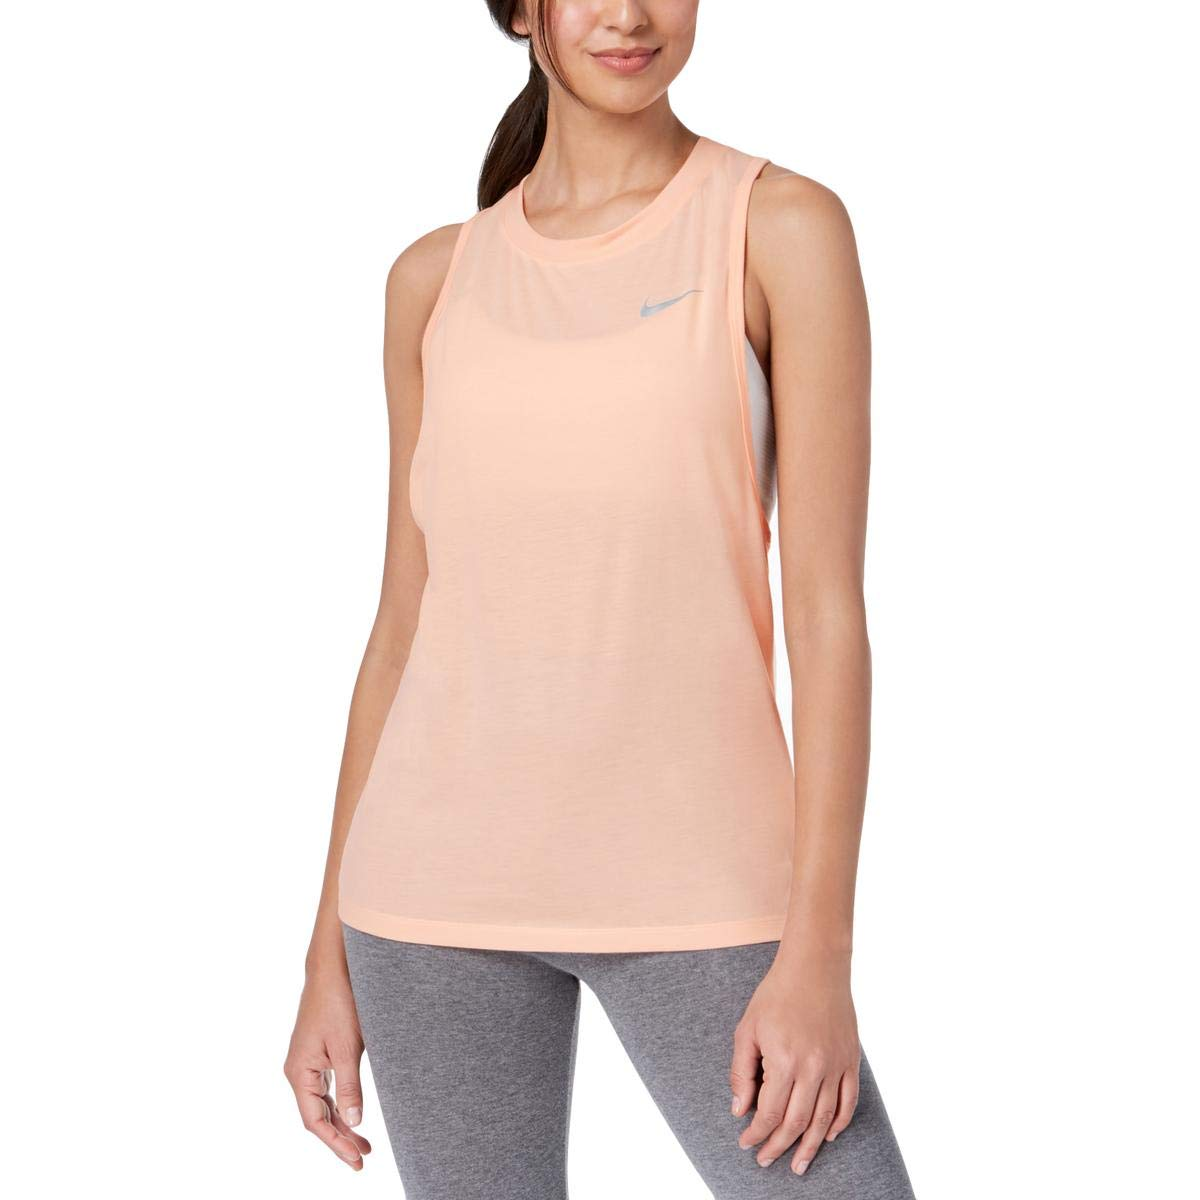 Amazon.com: Nike Womens Tailwind Yoga Fitness Tank Top ...